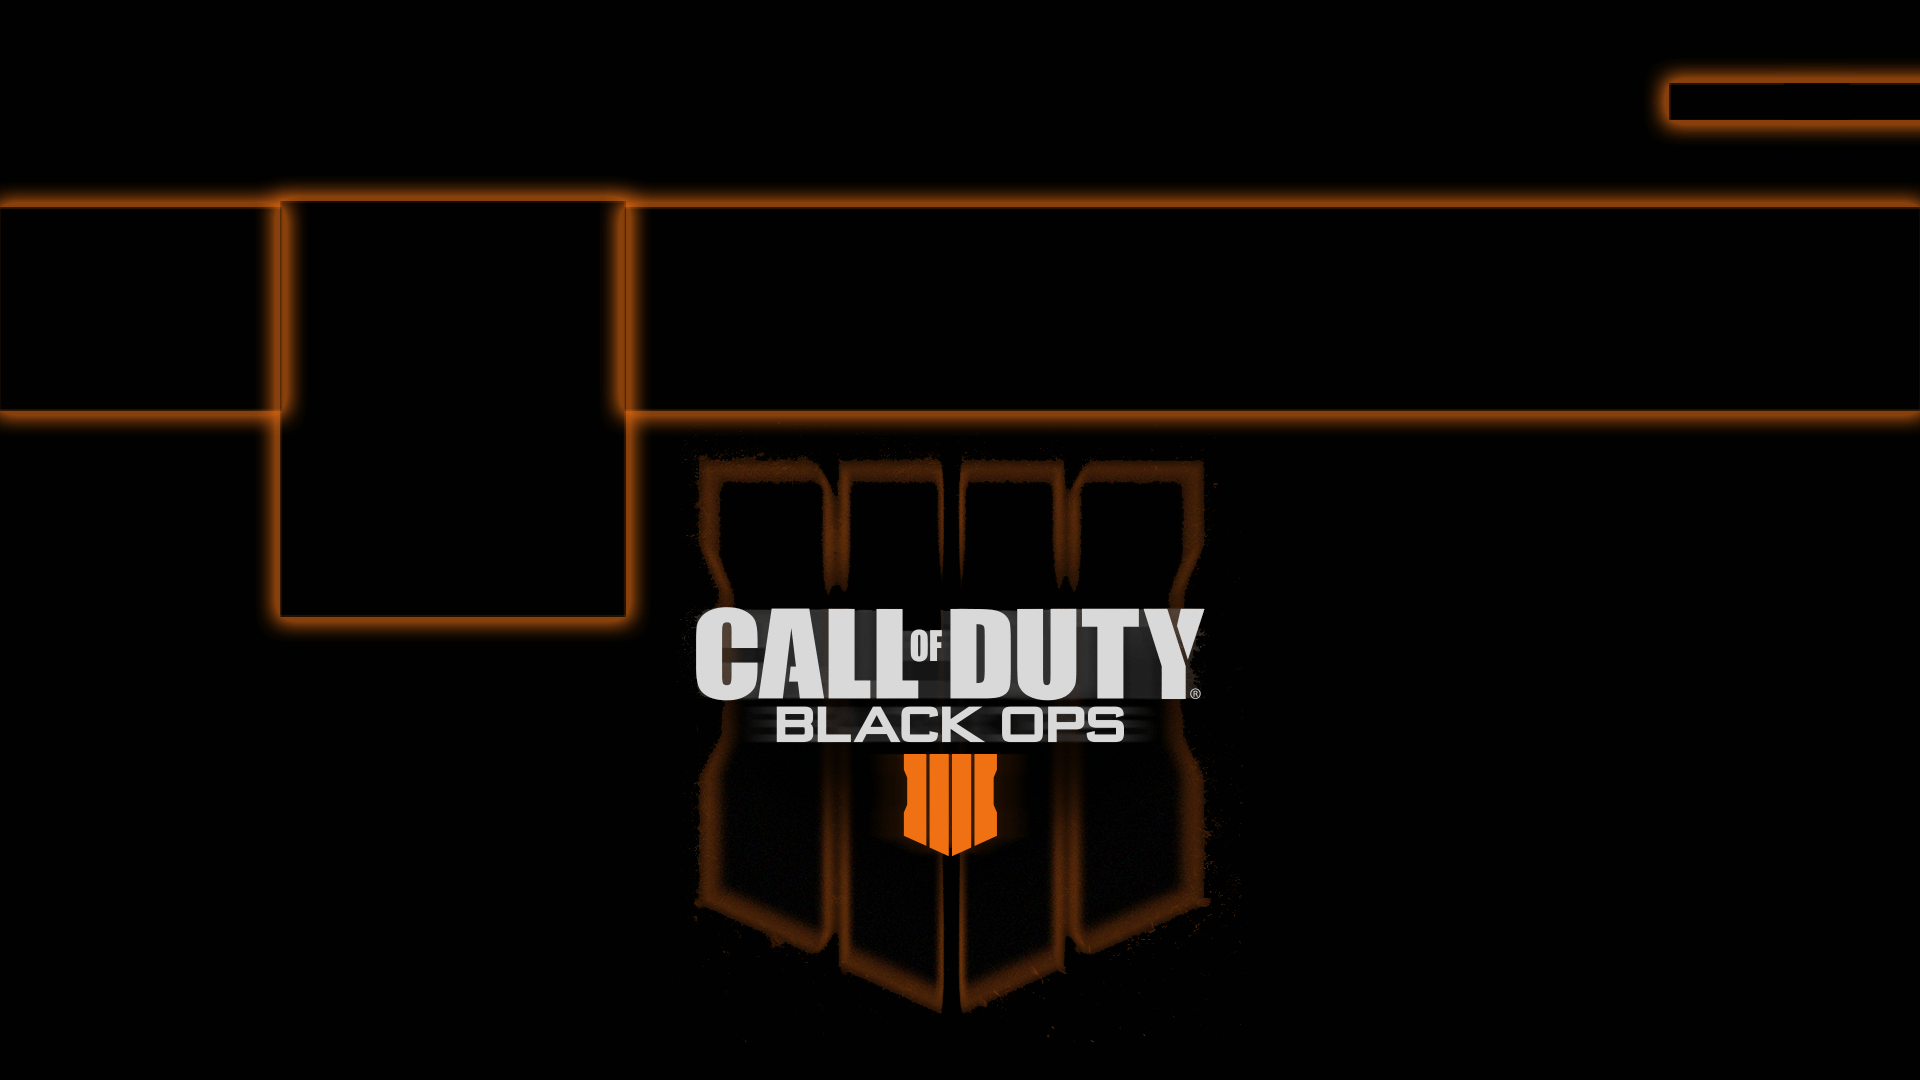 Zombies Animated Wallpaper Hd Cod Black Ops 4 Ps4wallpapers Com